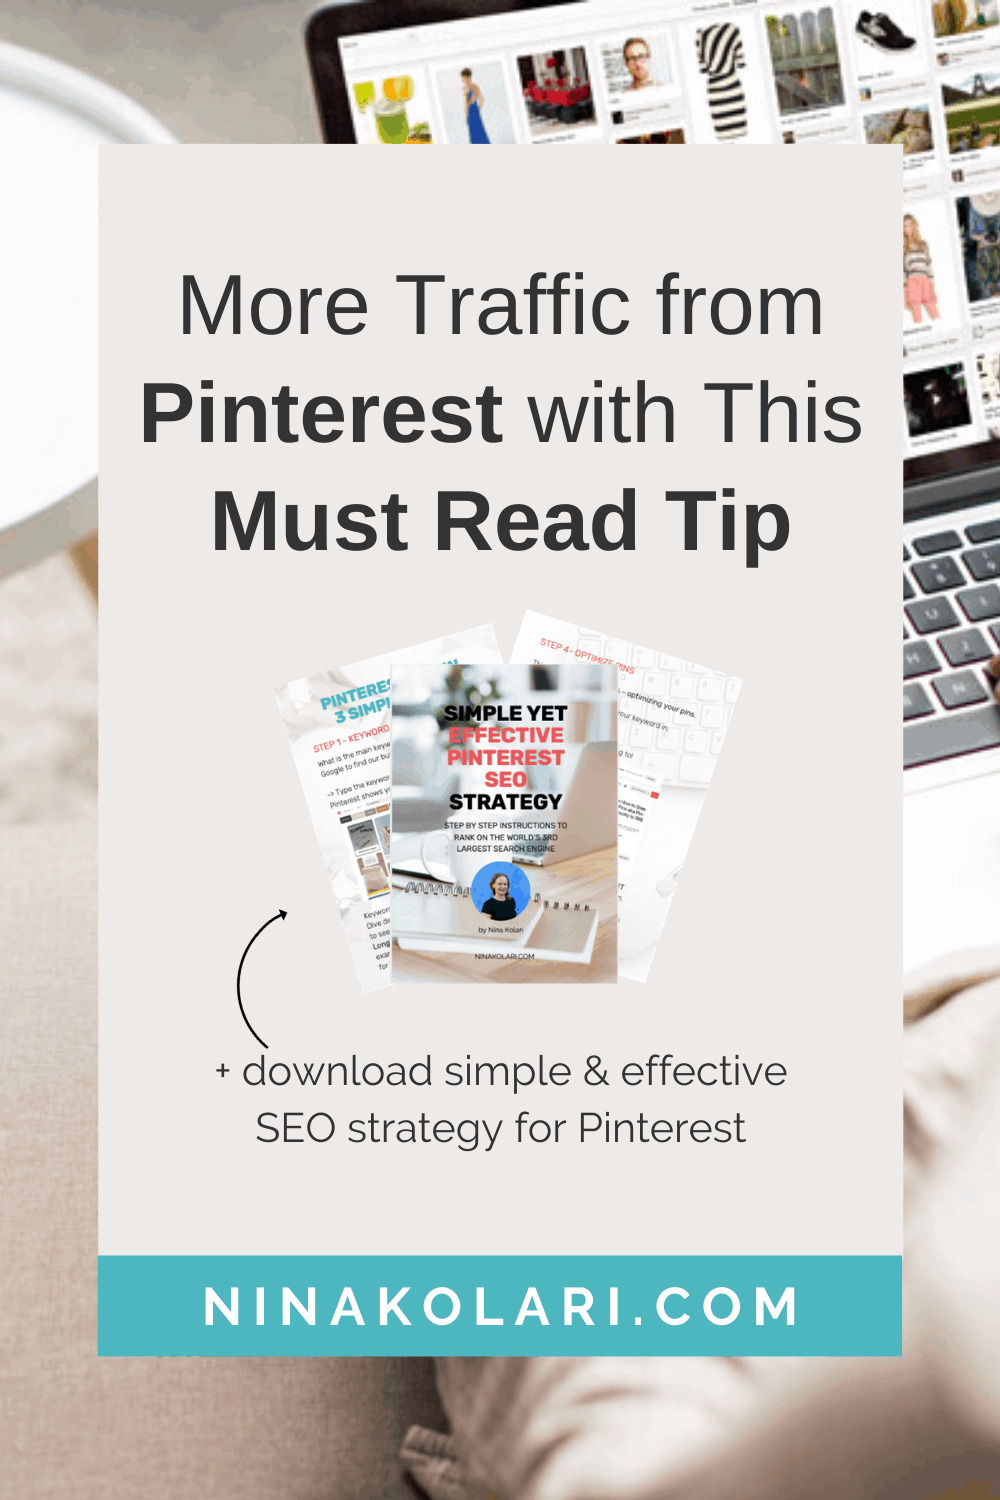 #1 Pinterest marketing Strategy | Simple yet very powerful way to increase traffic from Pinterest. This tip allows Pinterest to rank you higher on the results as they know more about the pin you just posted - this will increase your rankings - guaranteed! Check out also other Pinterest marketing tips for bloggers, for beginners, for business and entrepreneurs - I share ideas, strategies and more. #pinterestmarketing #socialmediamarketing #pinteresttips